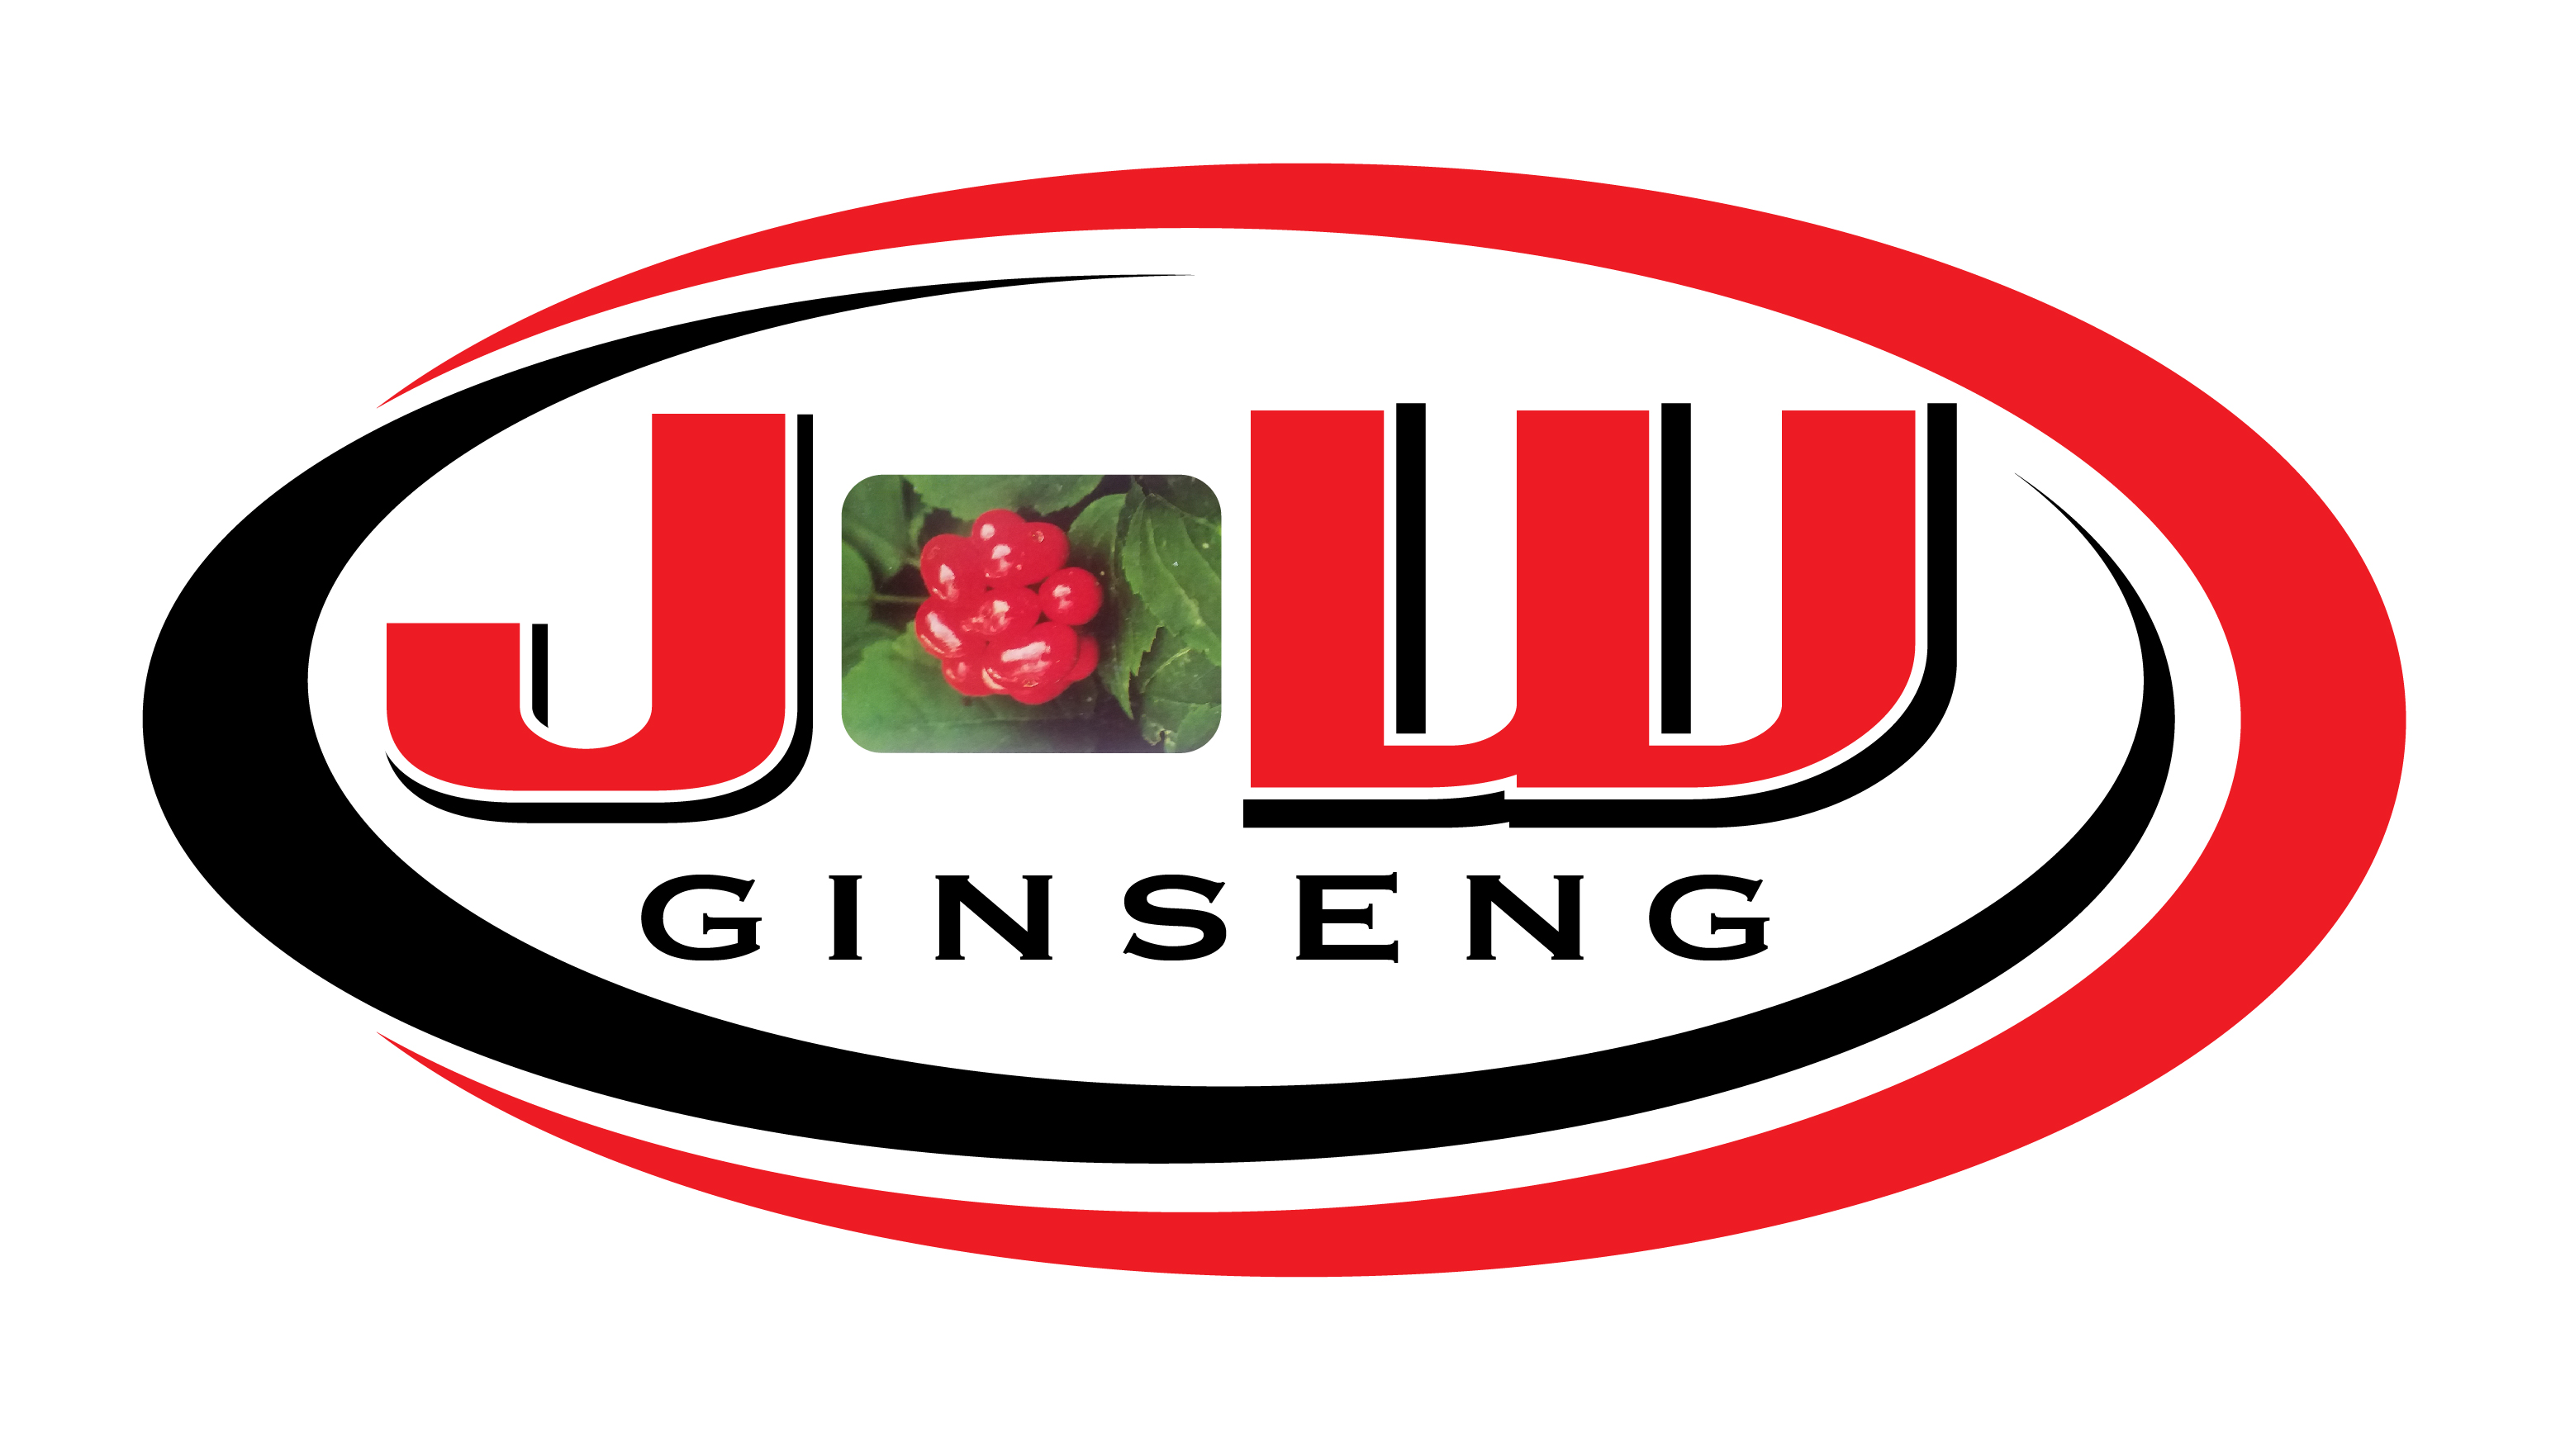 Put a Ginseng Picture Here